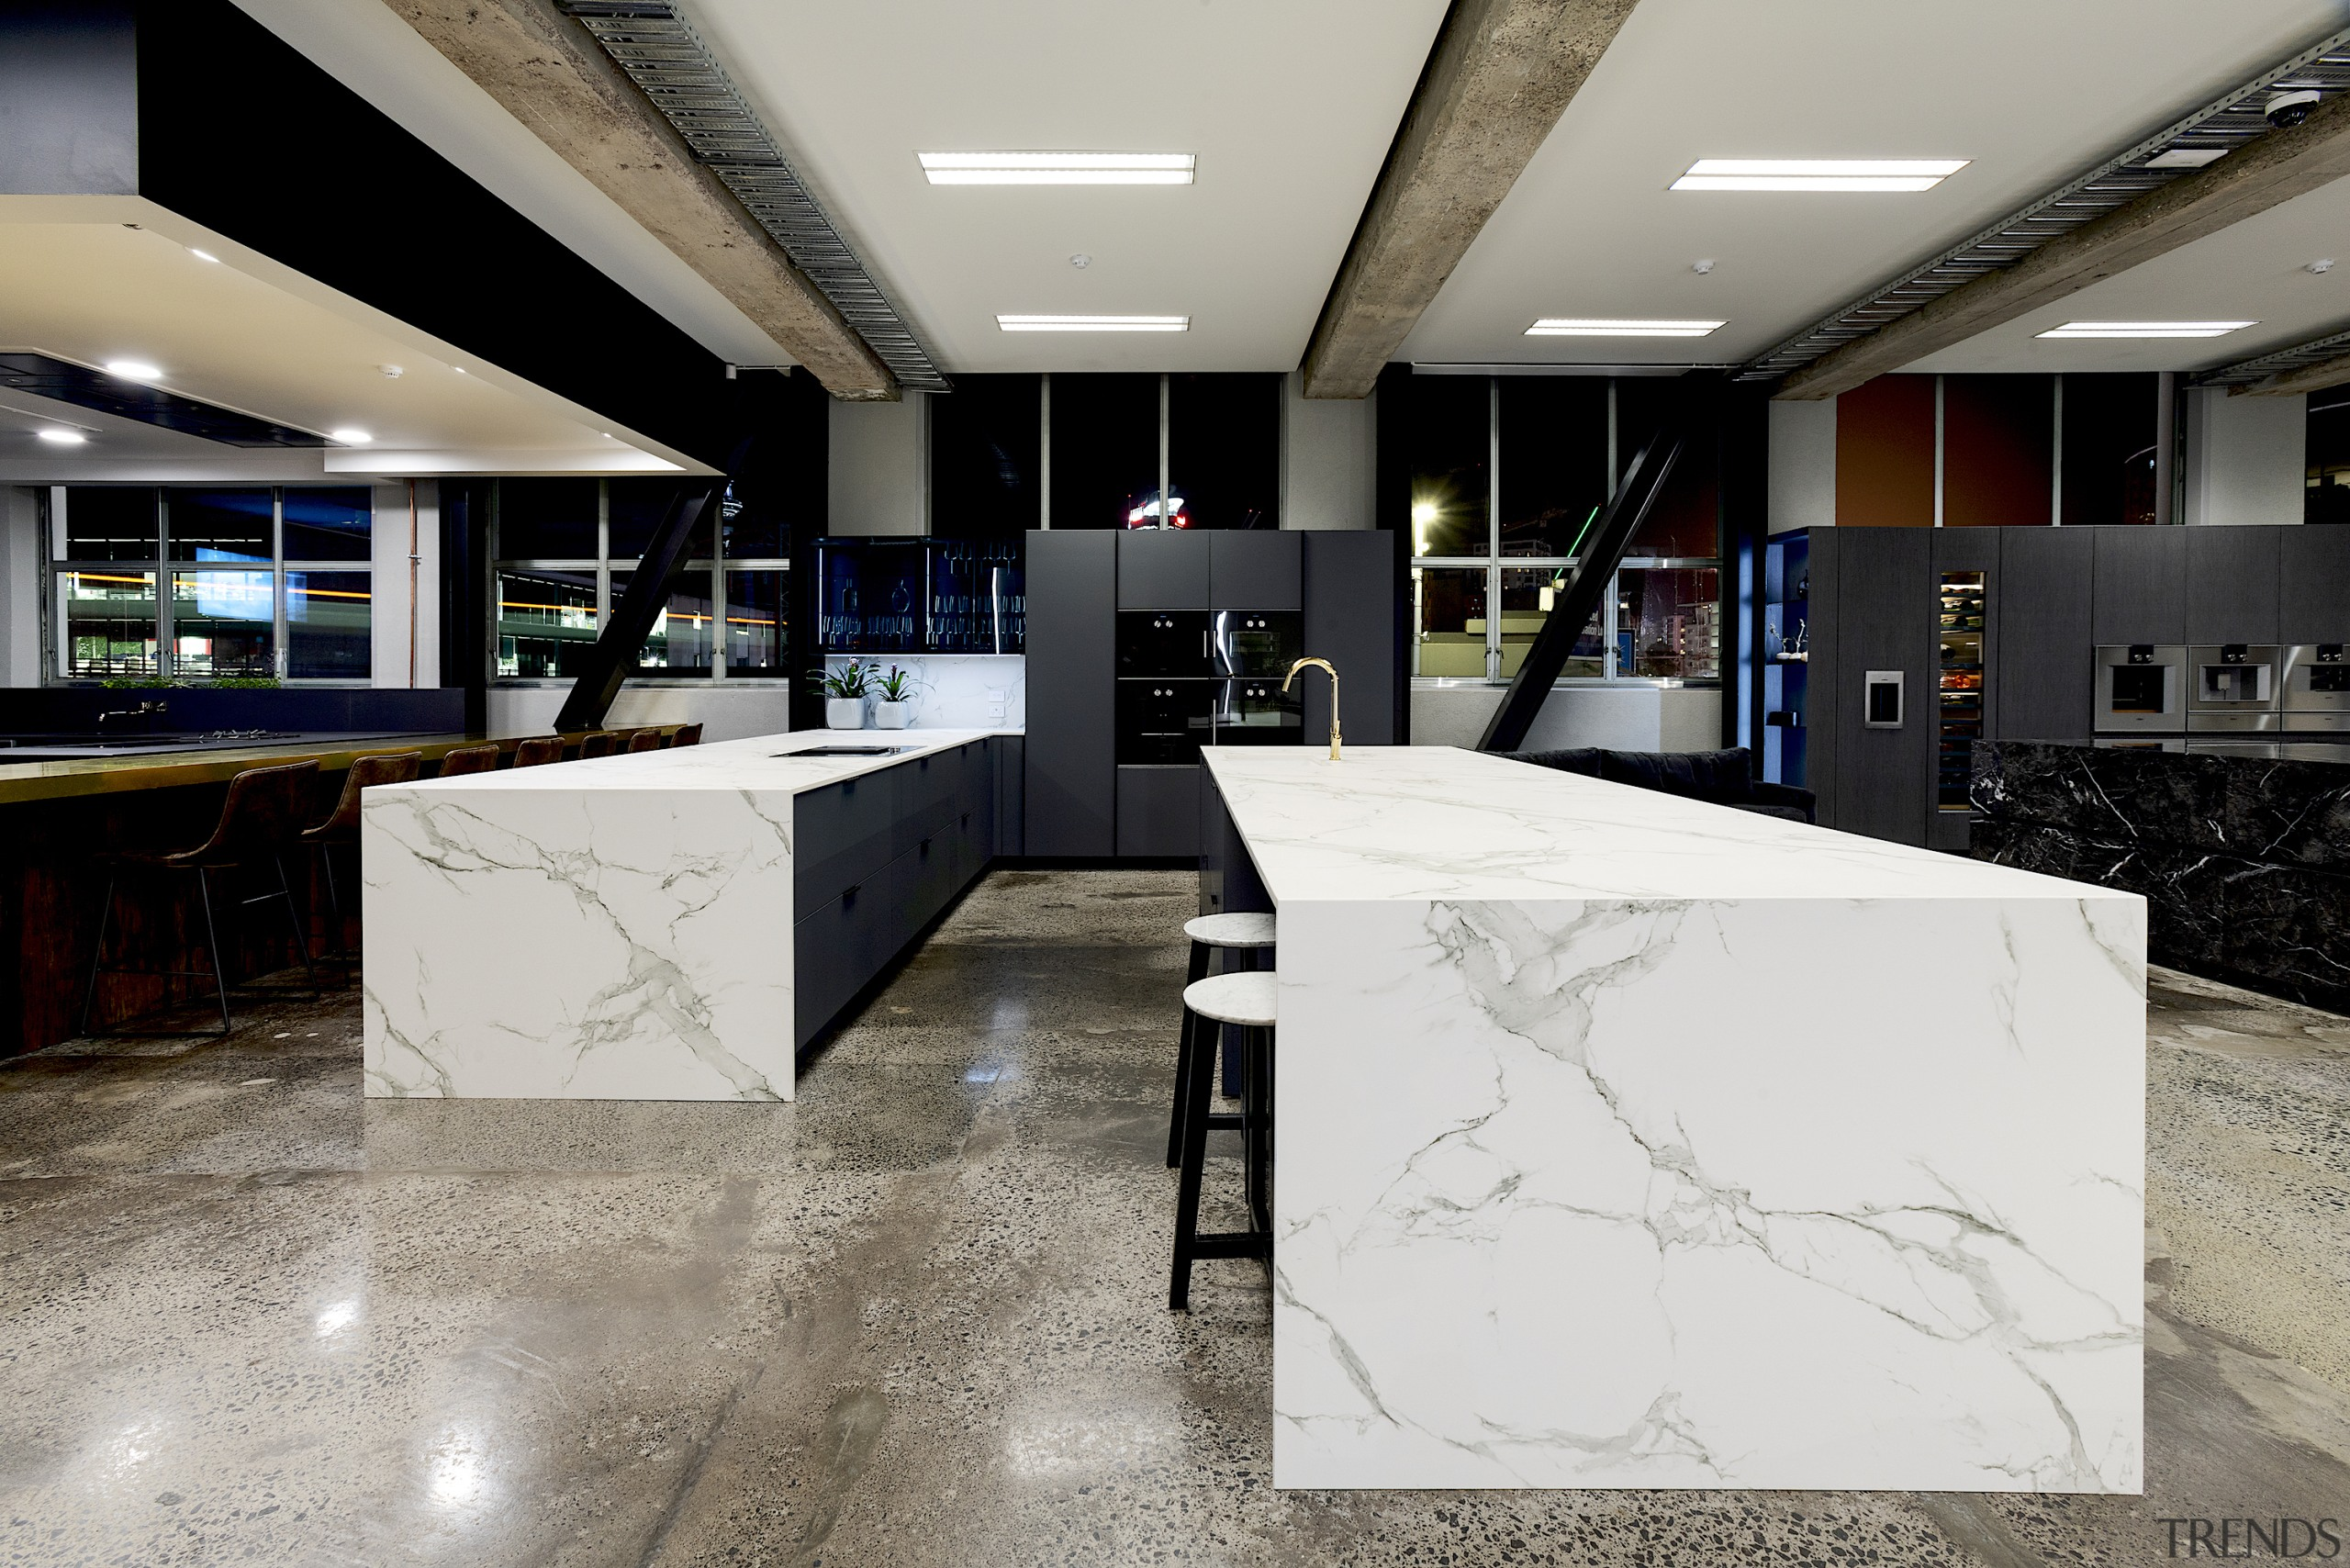 Cool stone surfaces meet strong forms in the gray, black